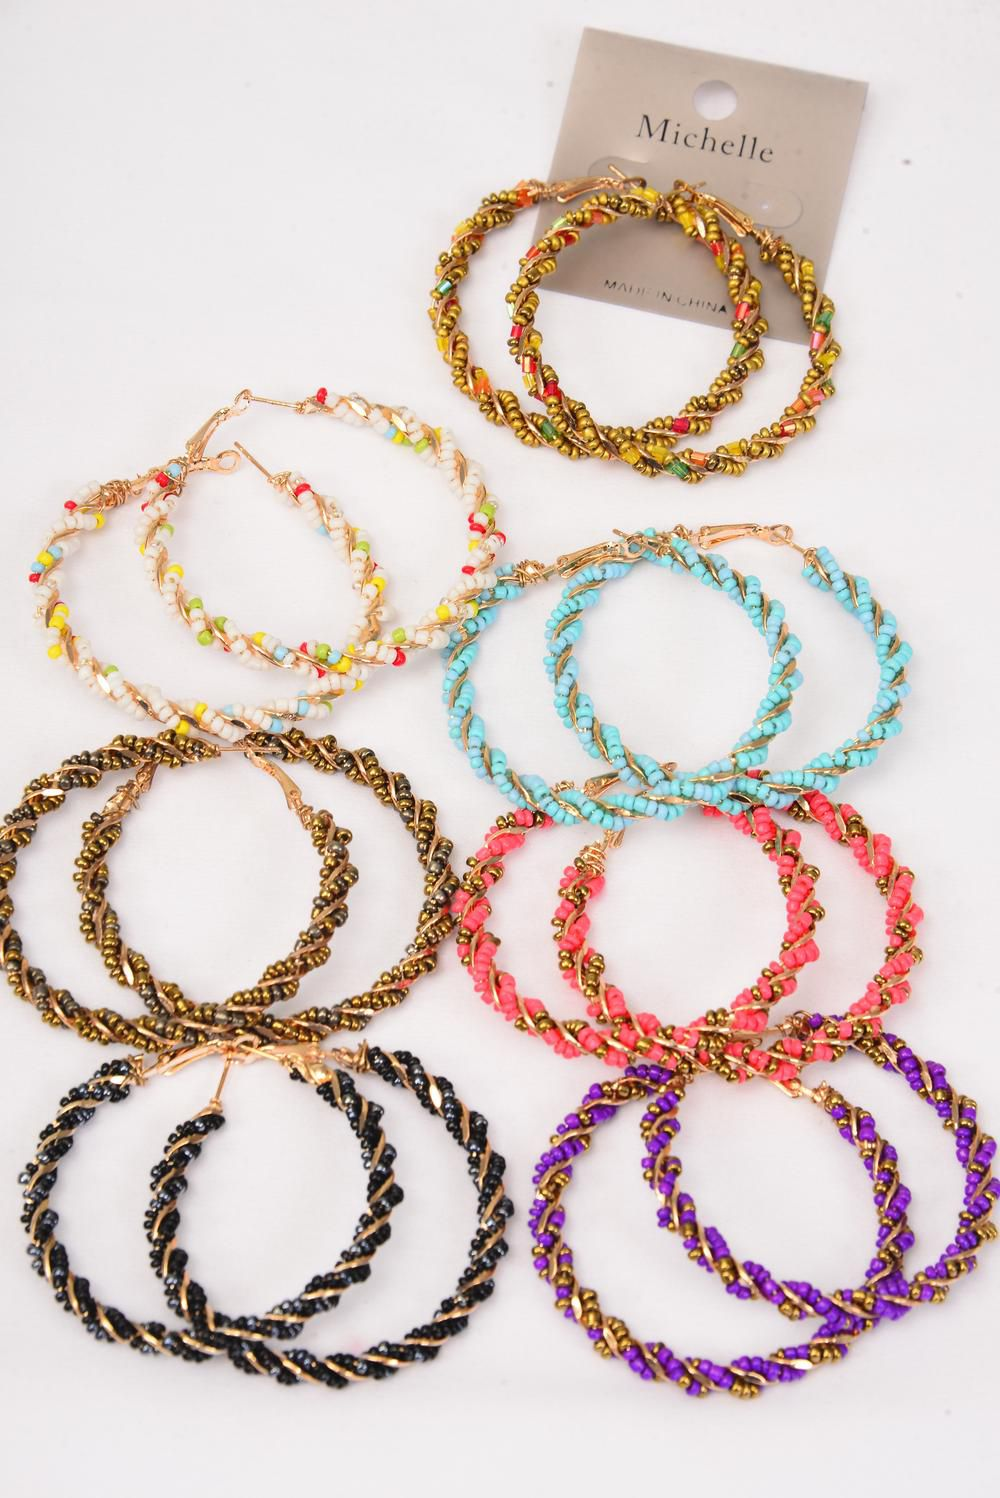 "Earrings Loop Indian Beads Wrap Around/DZ match 26909 *Post** Size-2"" Wide,2 Gold,2 Turquoise,2 Purple,2 Coral,2 Bronze,1 Black,1 White,7 Color Asst,Earring Card & Opp Bag & UPC Code"